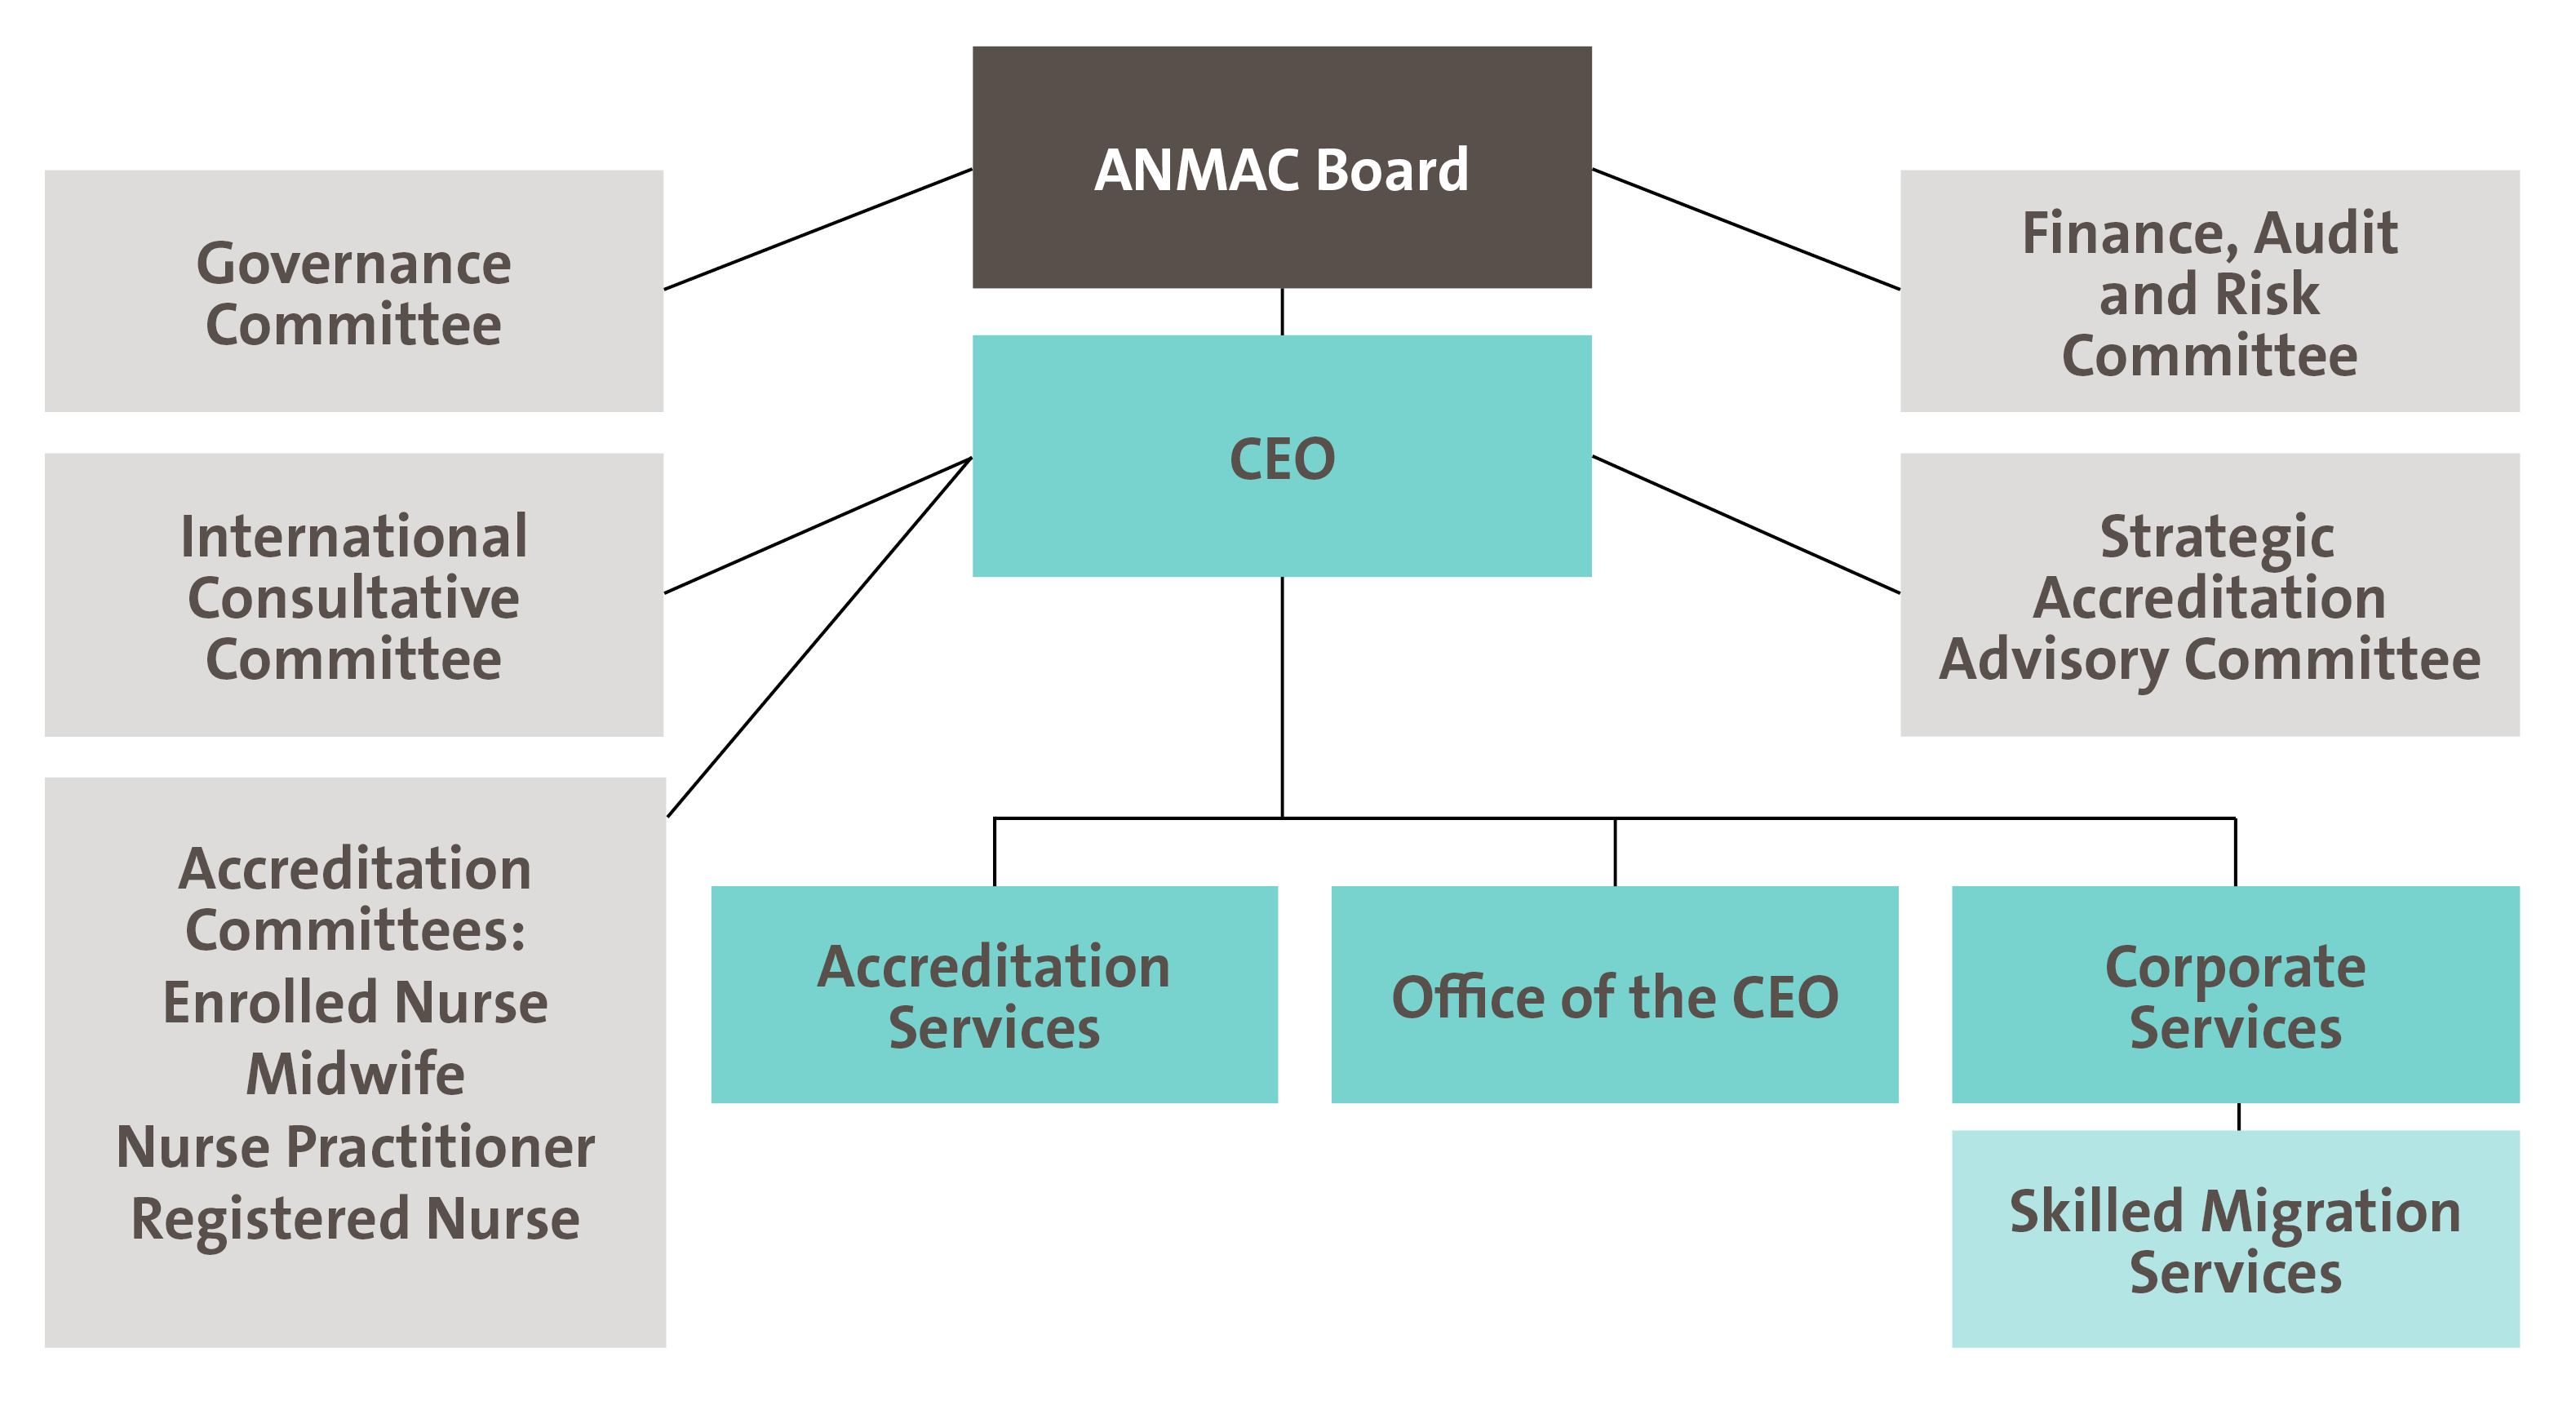 ANMAC Governance Structure